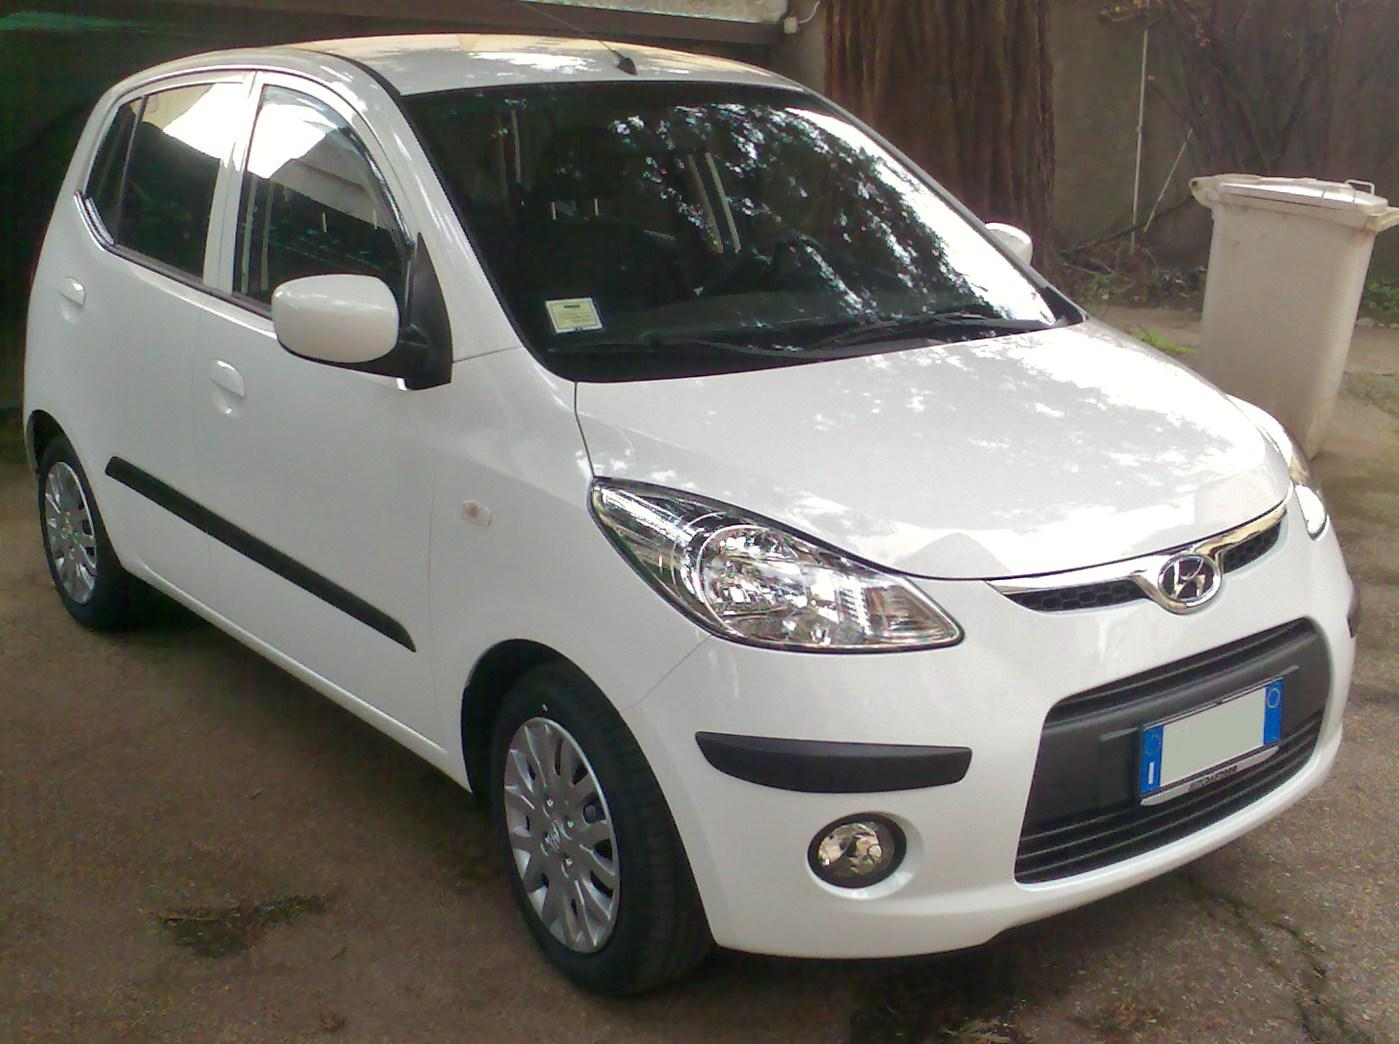 2010 hyundai i10 pictures information and specs auto. Black Bedroom Furniture Sets. Home Design Ideas